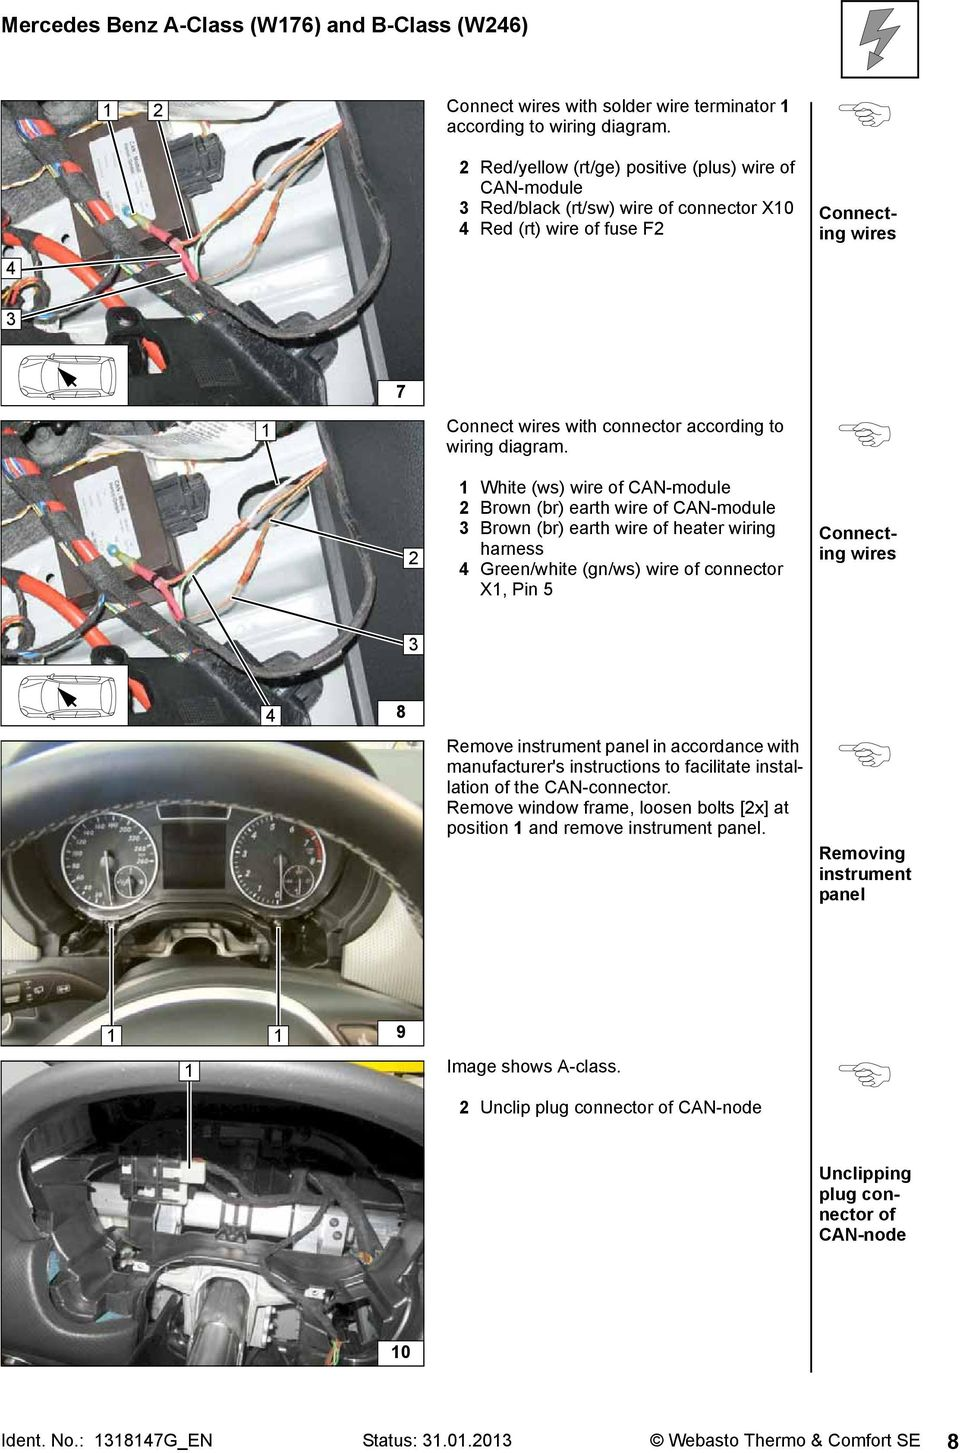 Installation Documentation Mercedes Benz A Class W176 And B Fe 501 Wiring Diagram White Ws Wire Of Can Module Brown Br Earth